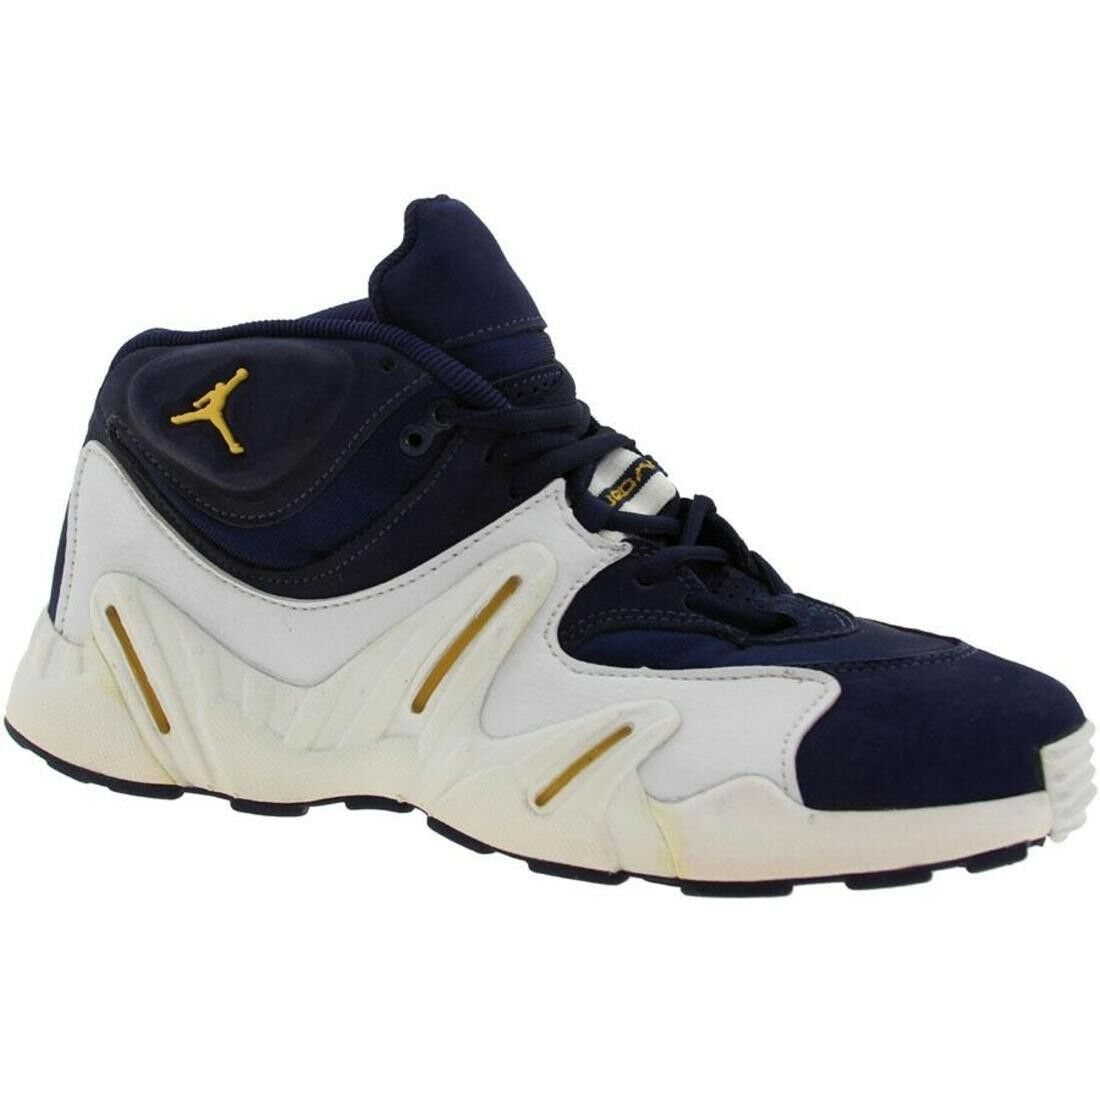 136021-471 Nike Men Jumpman 3 Percent Price reduction Brand discount Casual wild